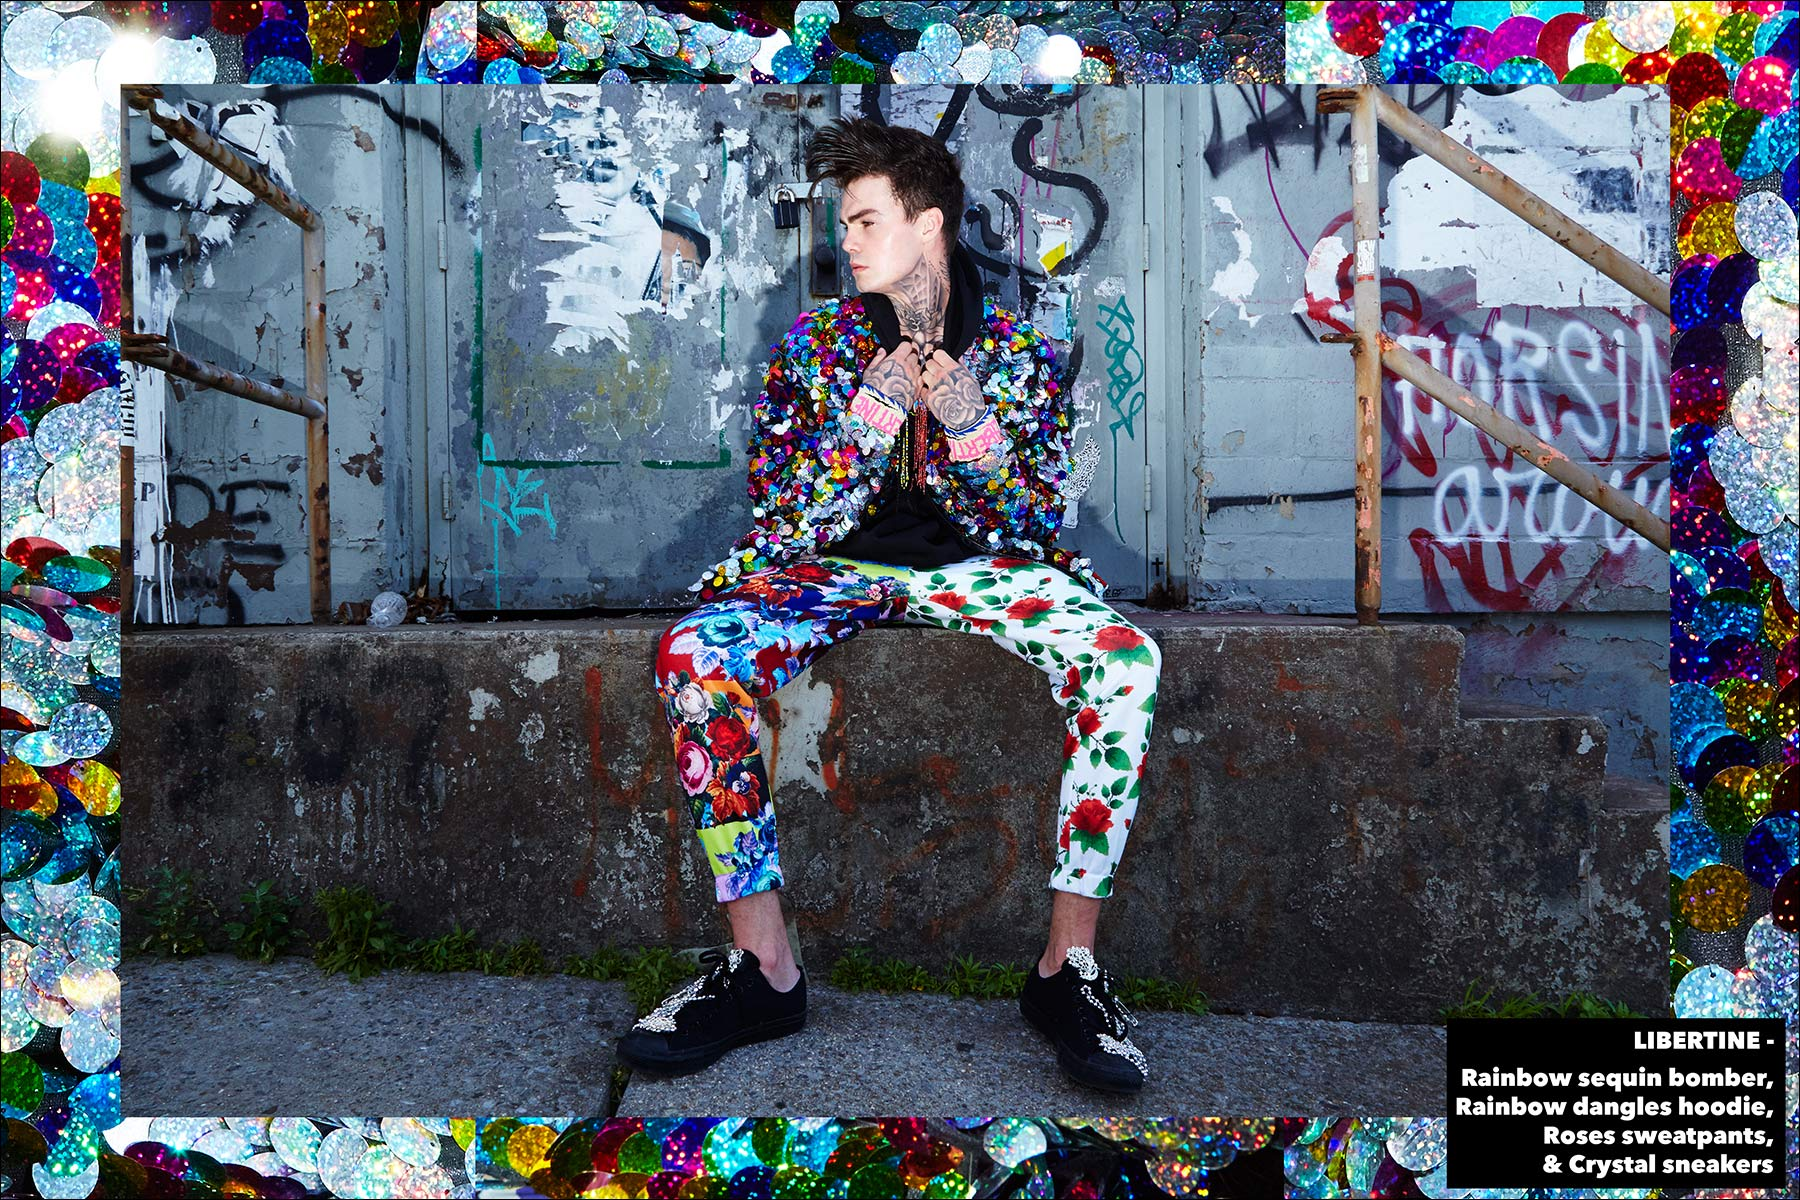 Model Jonathan Normolle, from New York Model Management, wears a Libertine Rainbow sequin bomber with Roses sweatpants. Photographed by Alexander Thompson for Ponyboy magazine New York.